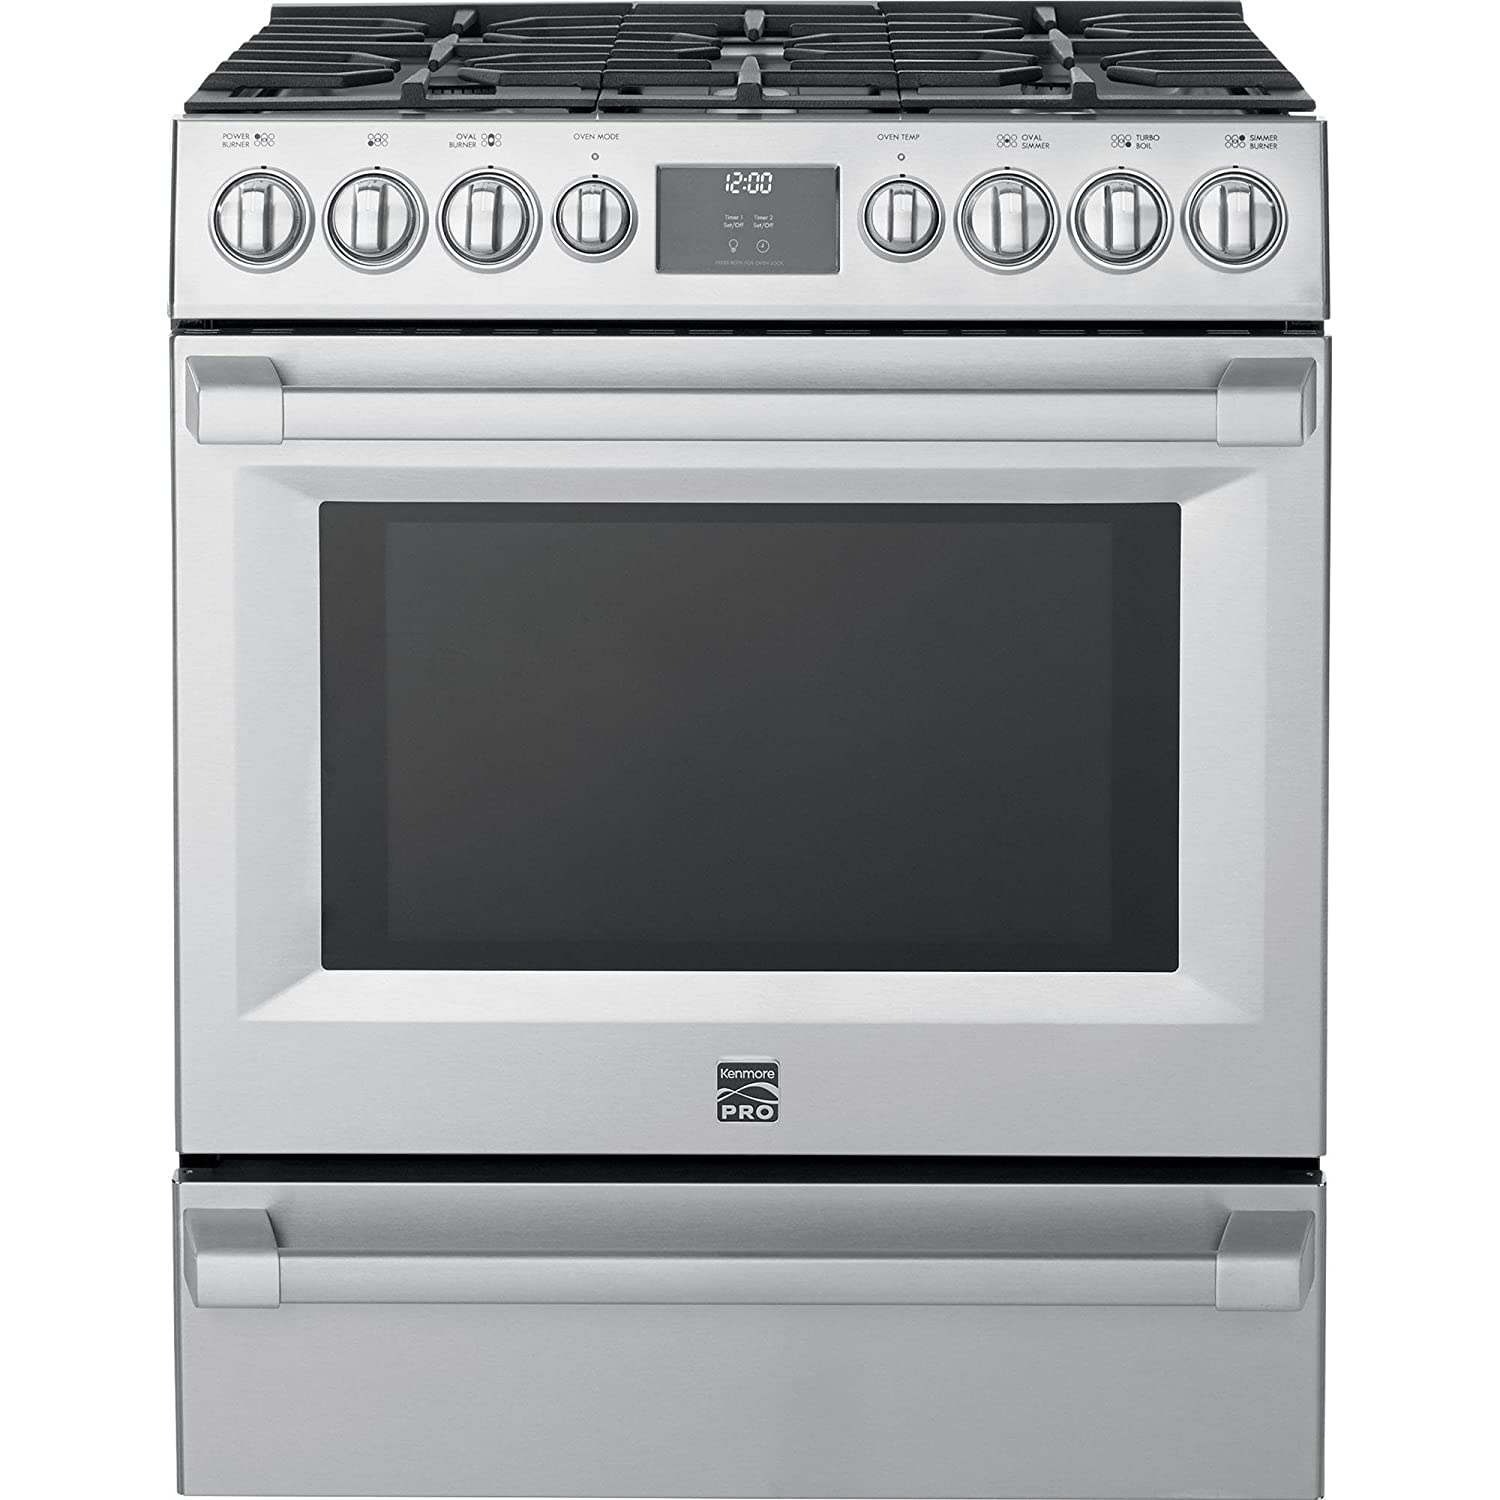 Amazon.com: Kenmore PRO 5.1 cu. ft. Self Clean Gas Range in Stainless  Steel, includes delivery and hookup -02272583: Appliances